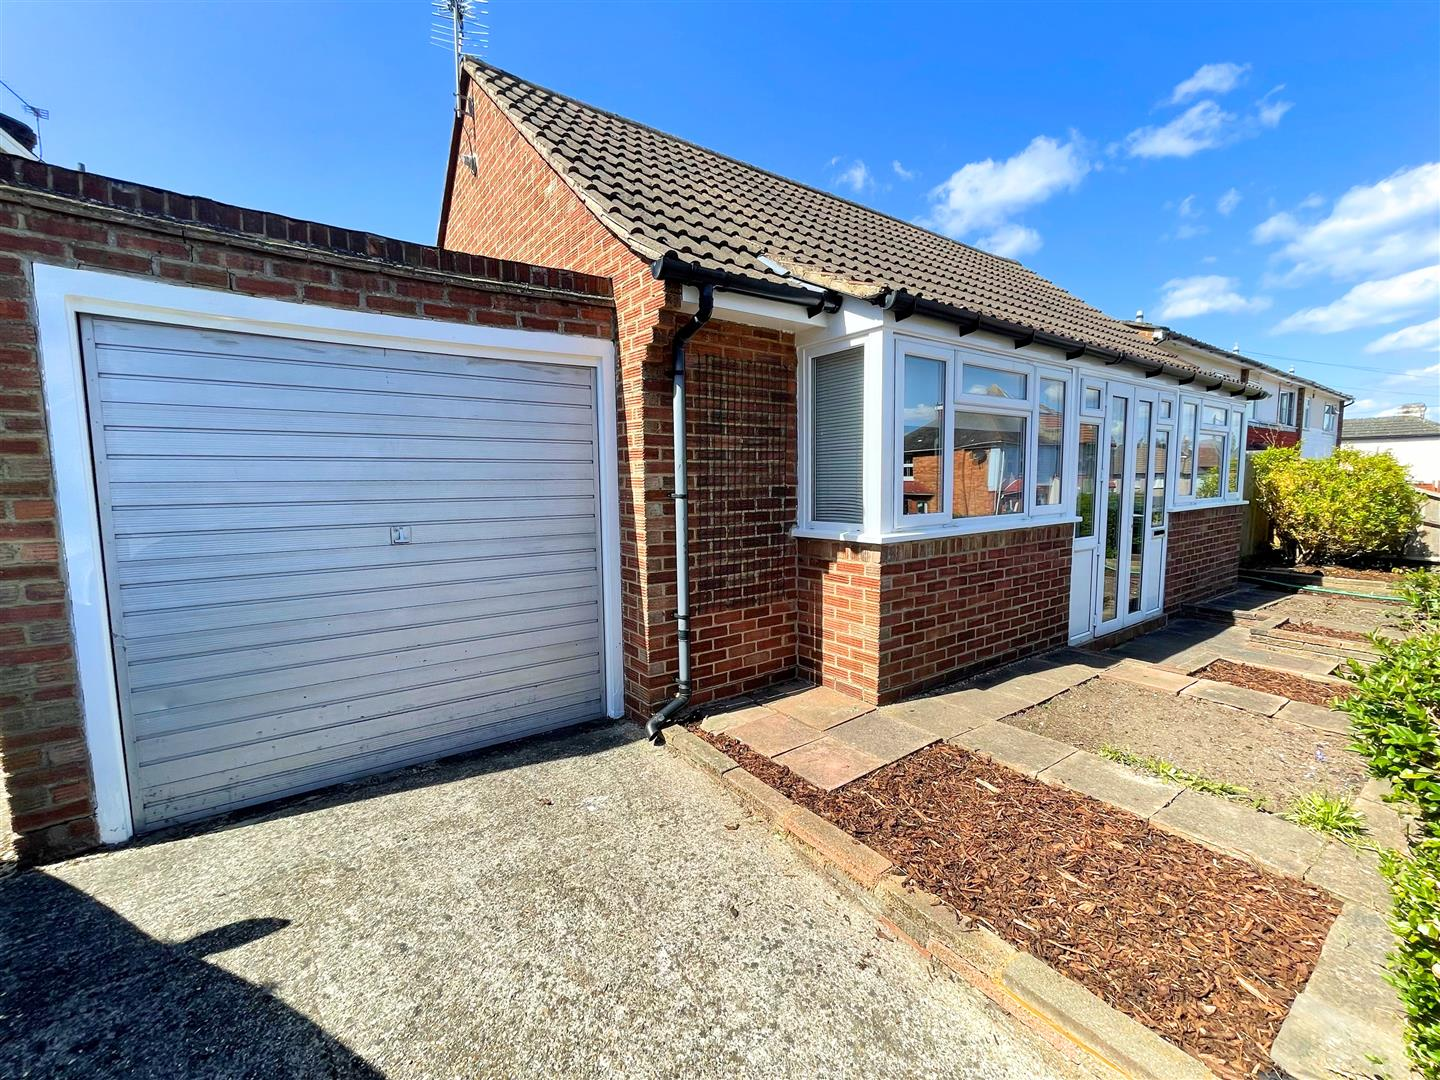 2 bed bungalow to rent in Waterloo Road, Sutton, SM1